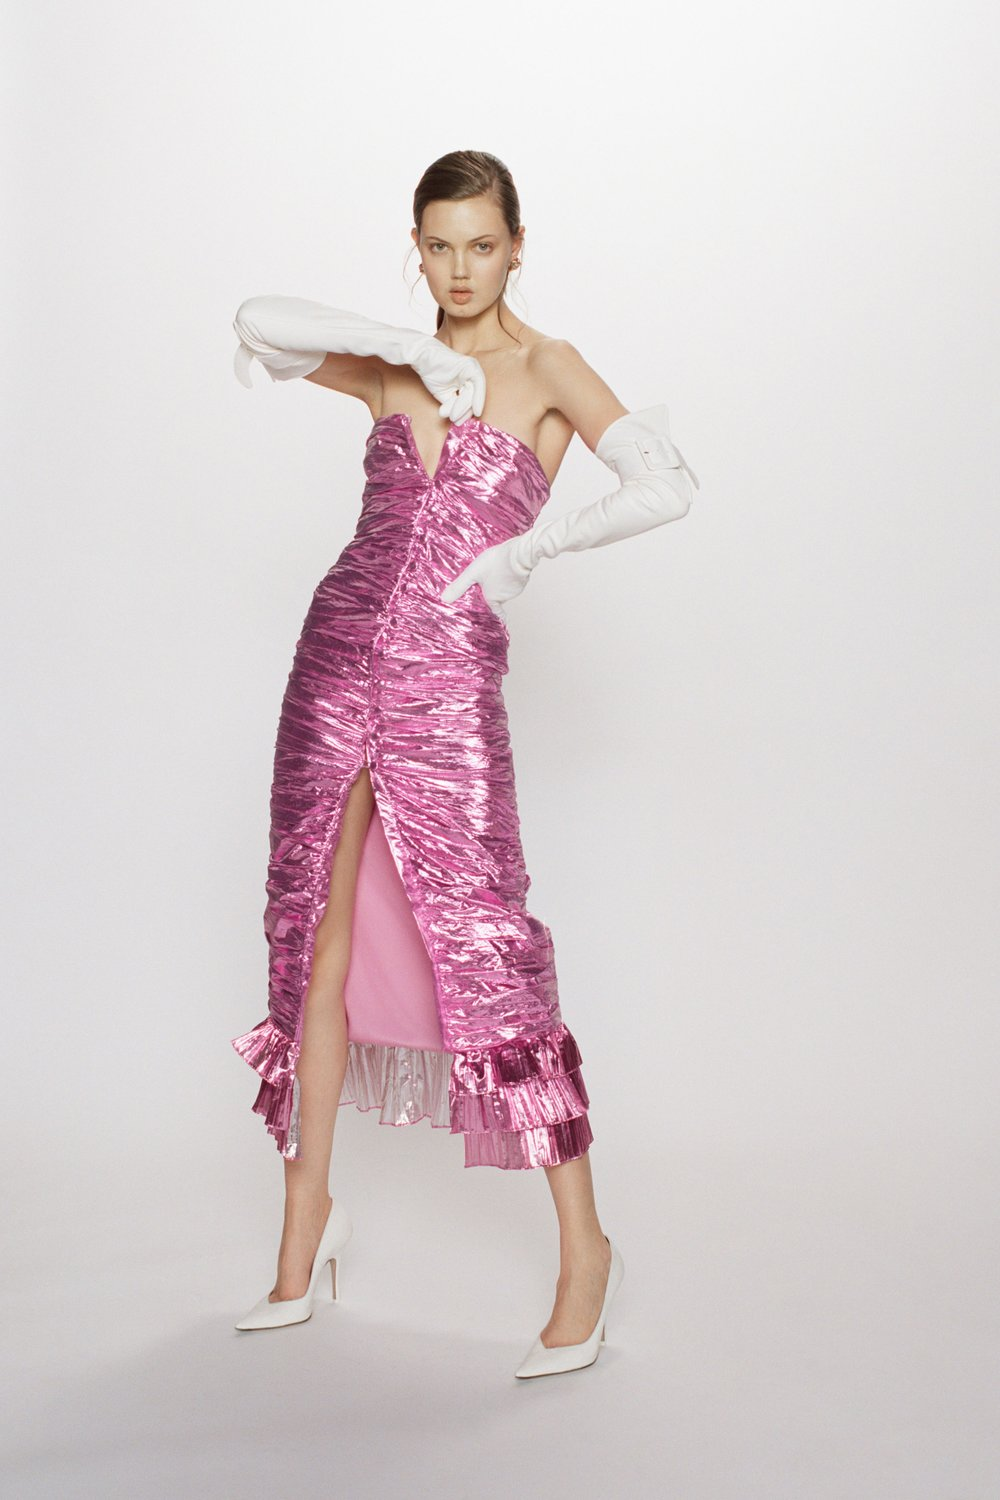 00022-attico-fall-19-ready-to-wear-credit-vito-fernicola.jpg